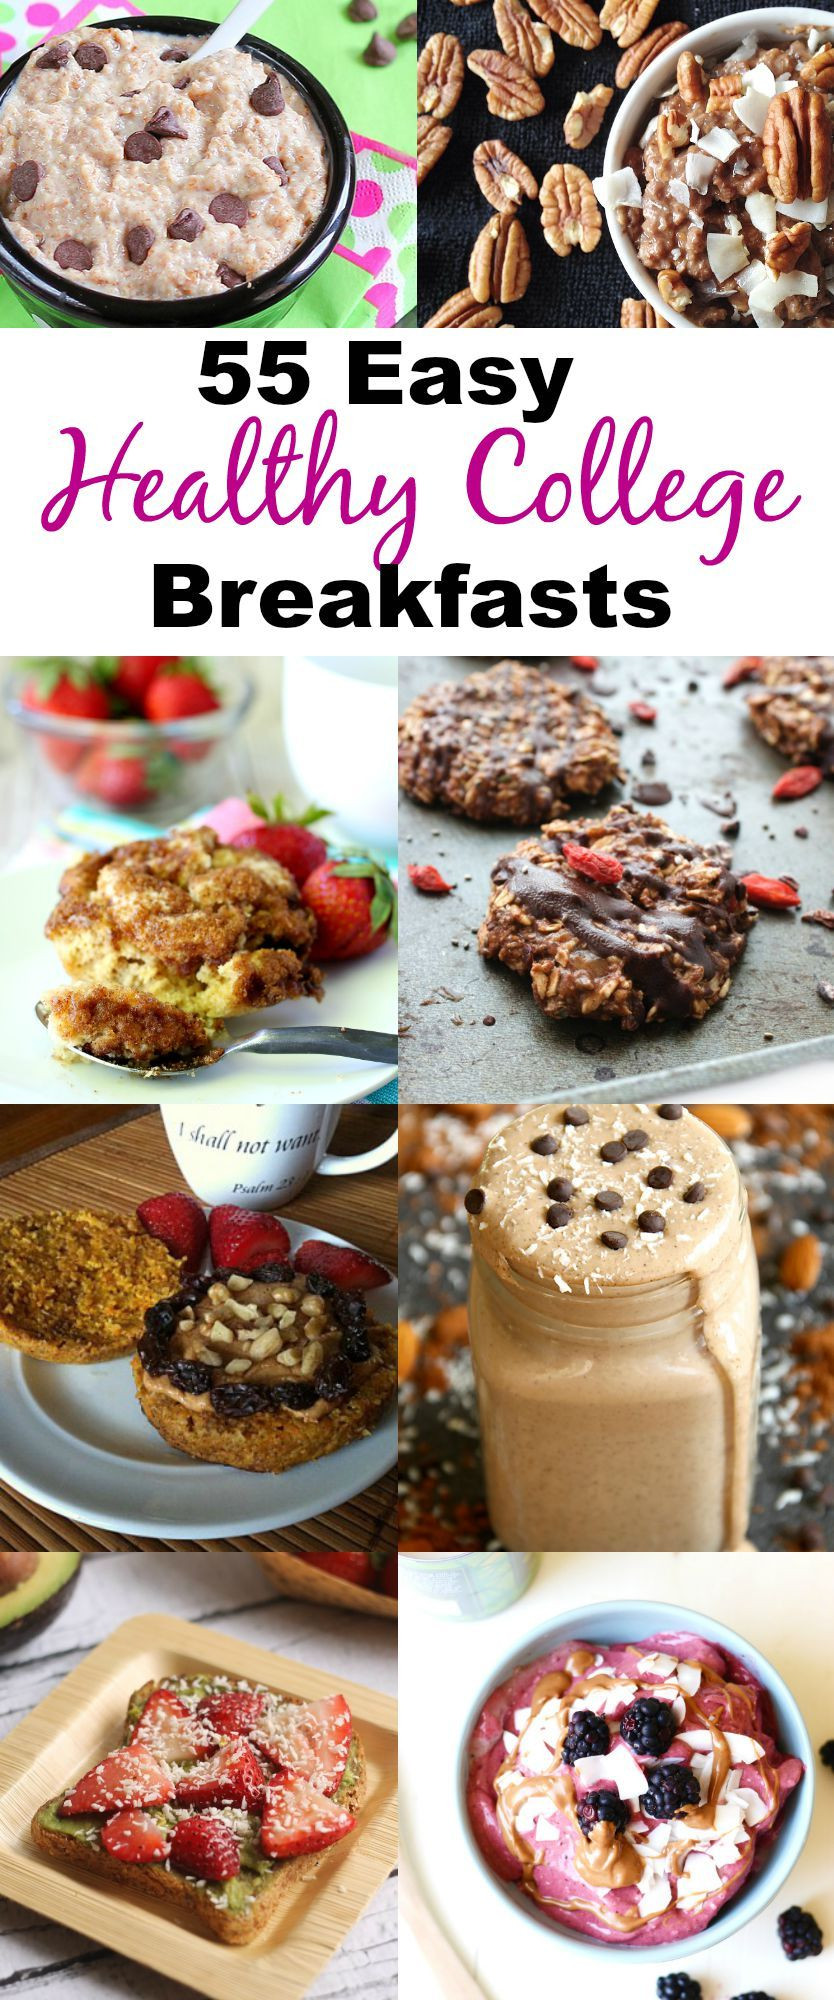 Healthy Breakfast For College Students  55 Healthy College Breakfast Recipes